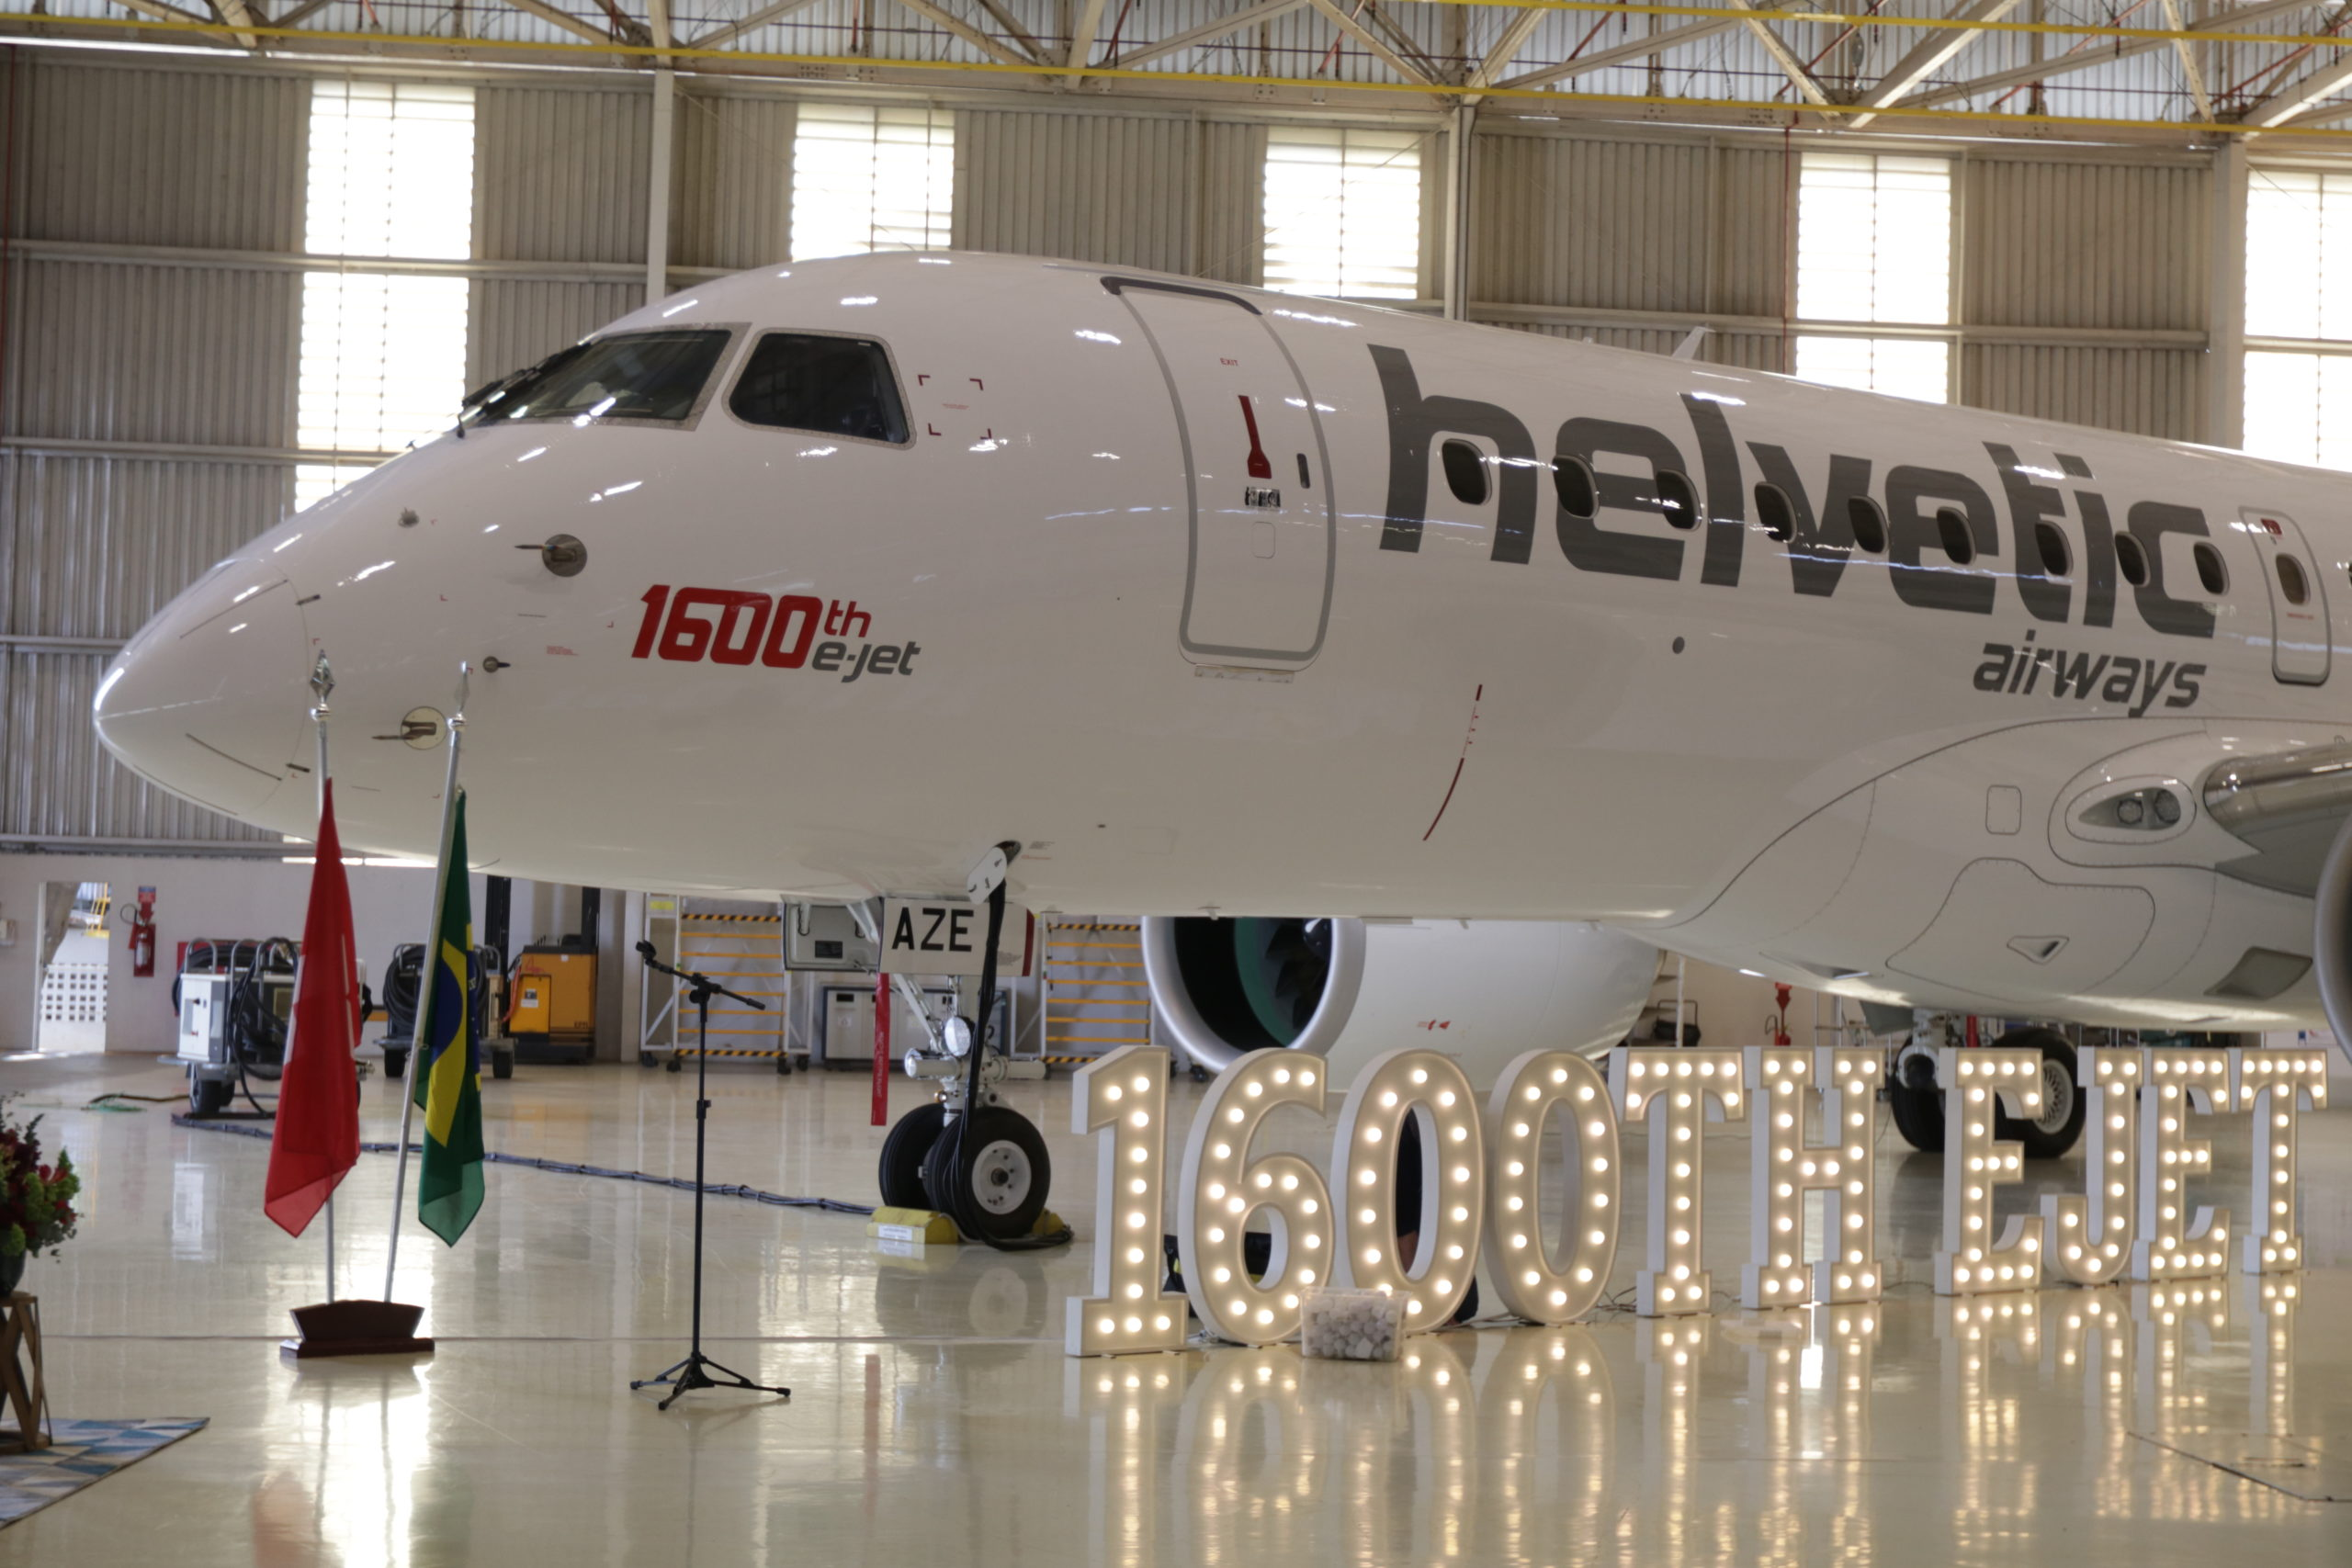 Embraer Celebrates The Delivery Of The 1,600th E-Jet To Helvetica Airways